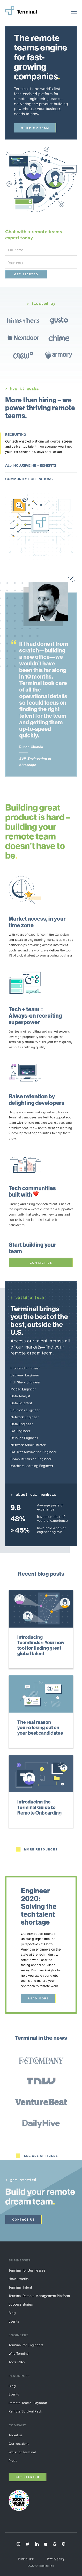 Example of Design for Business & Industrial, Mobile Landing Page by terminal.io | Mobile Landing Page Design